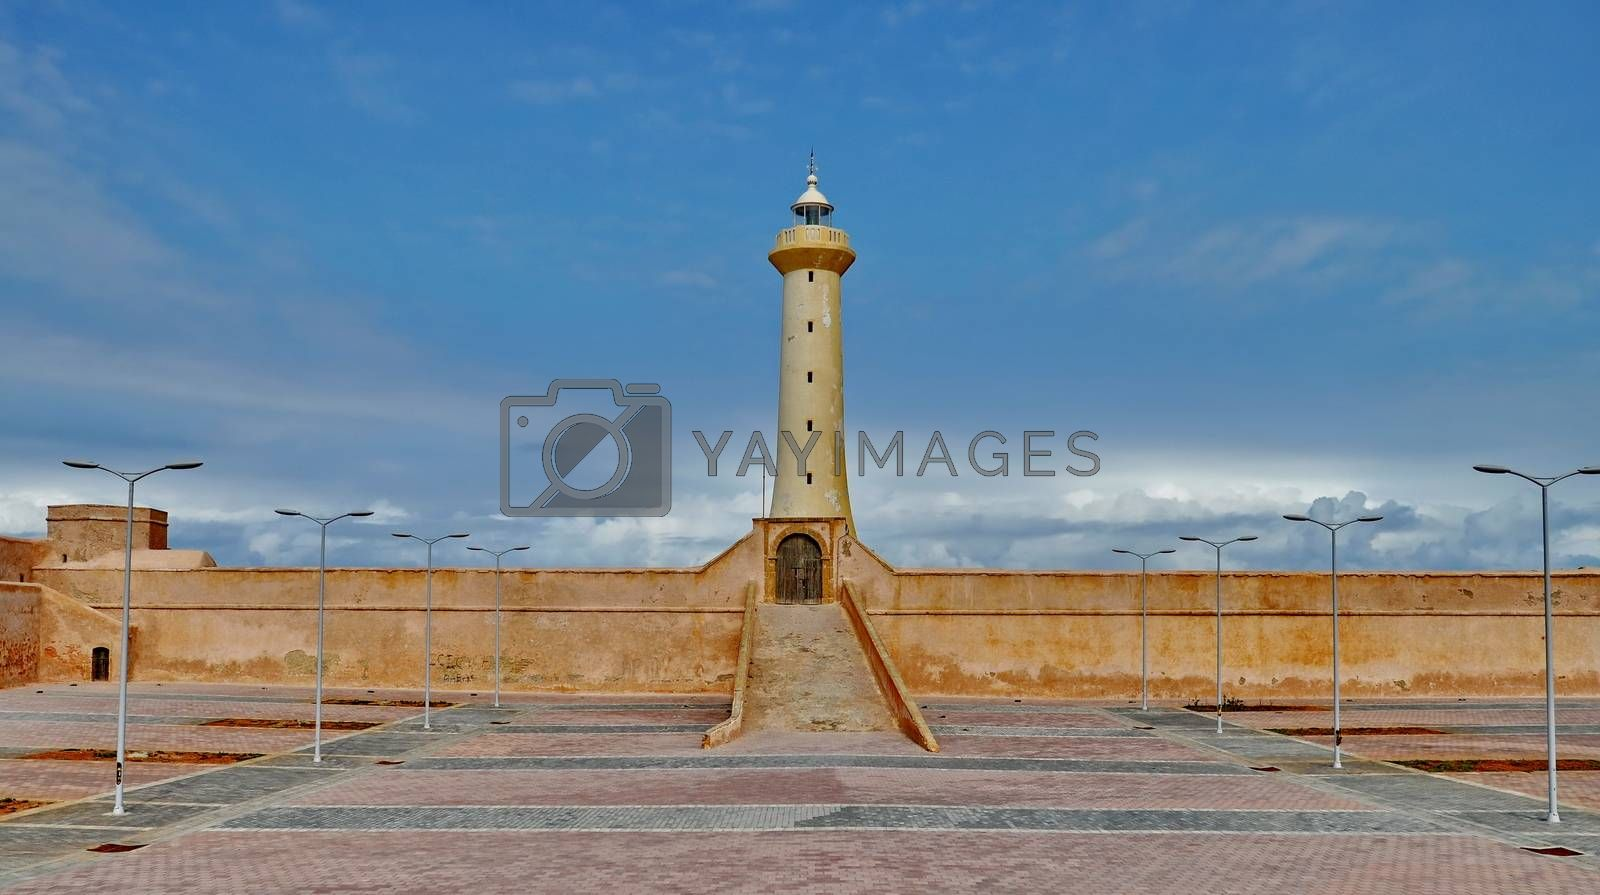 Royalty free image of Lighthouse of Rabat, Morocco by anderm